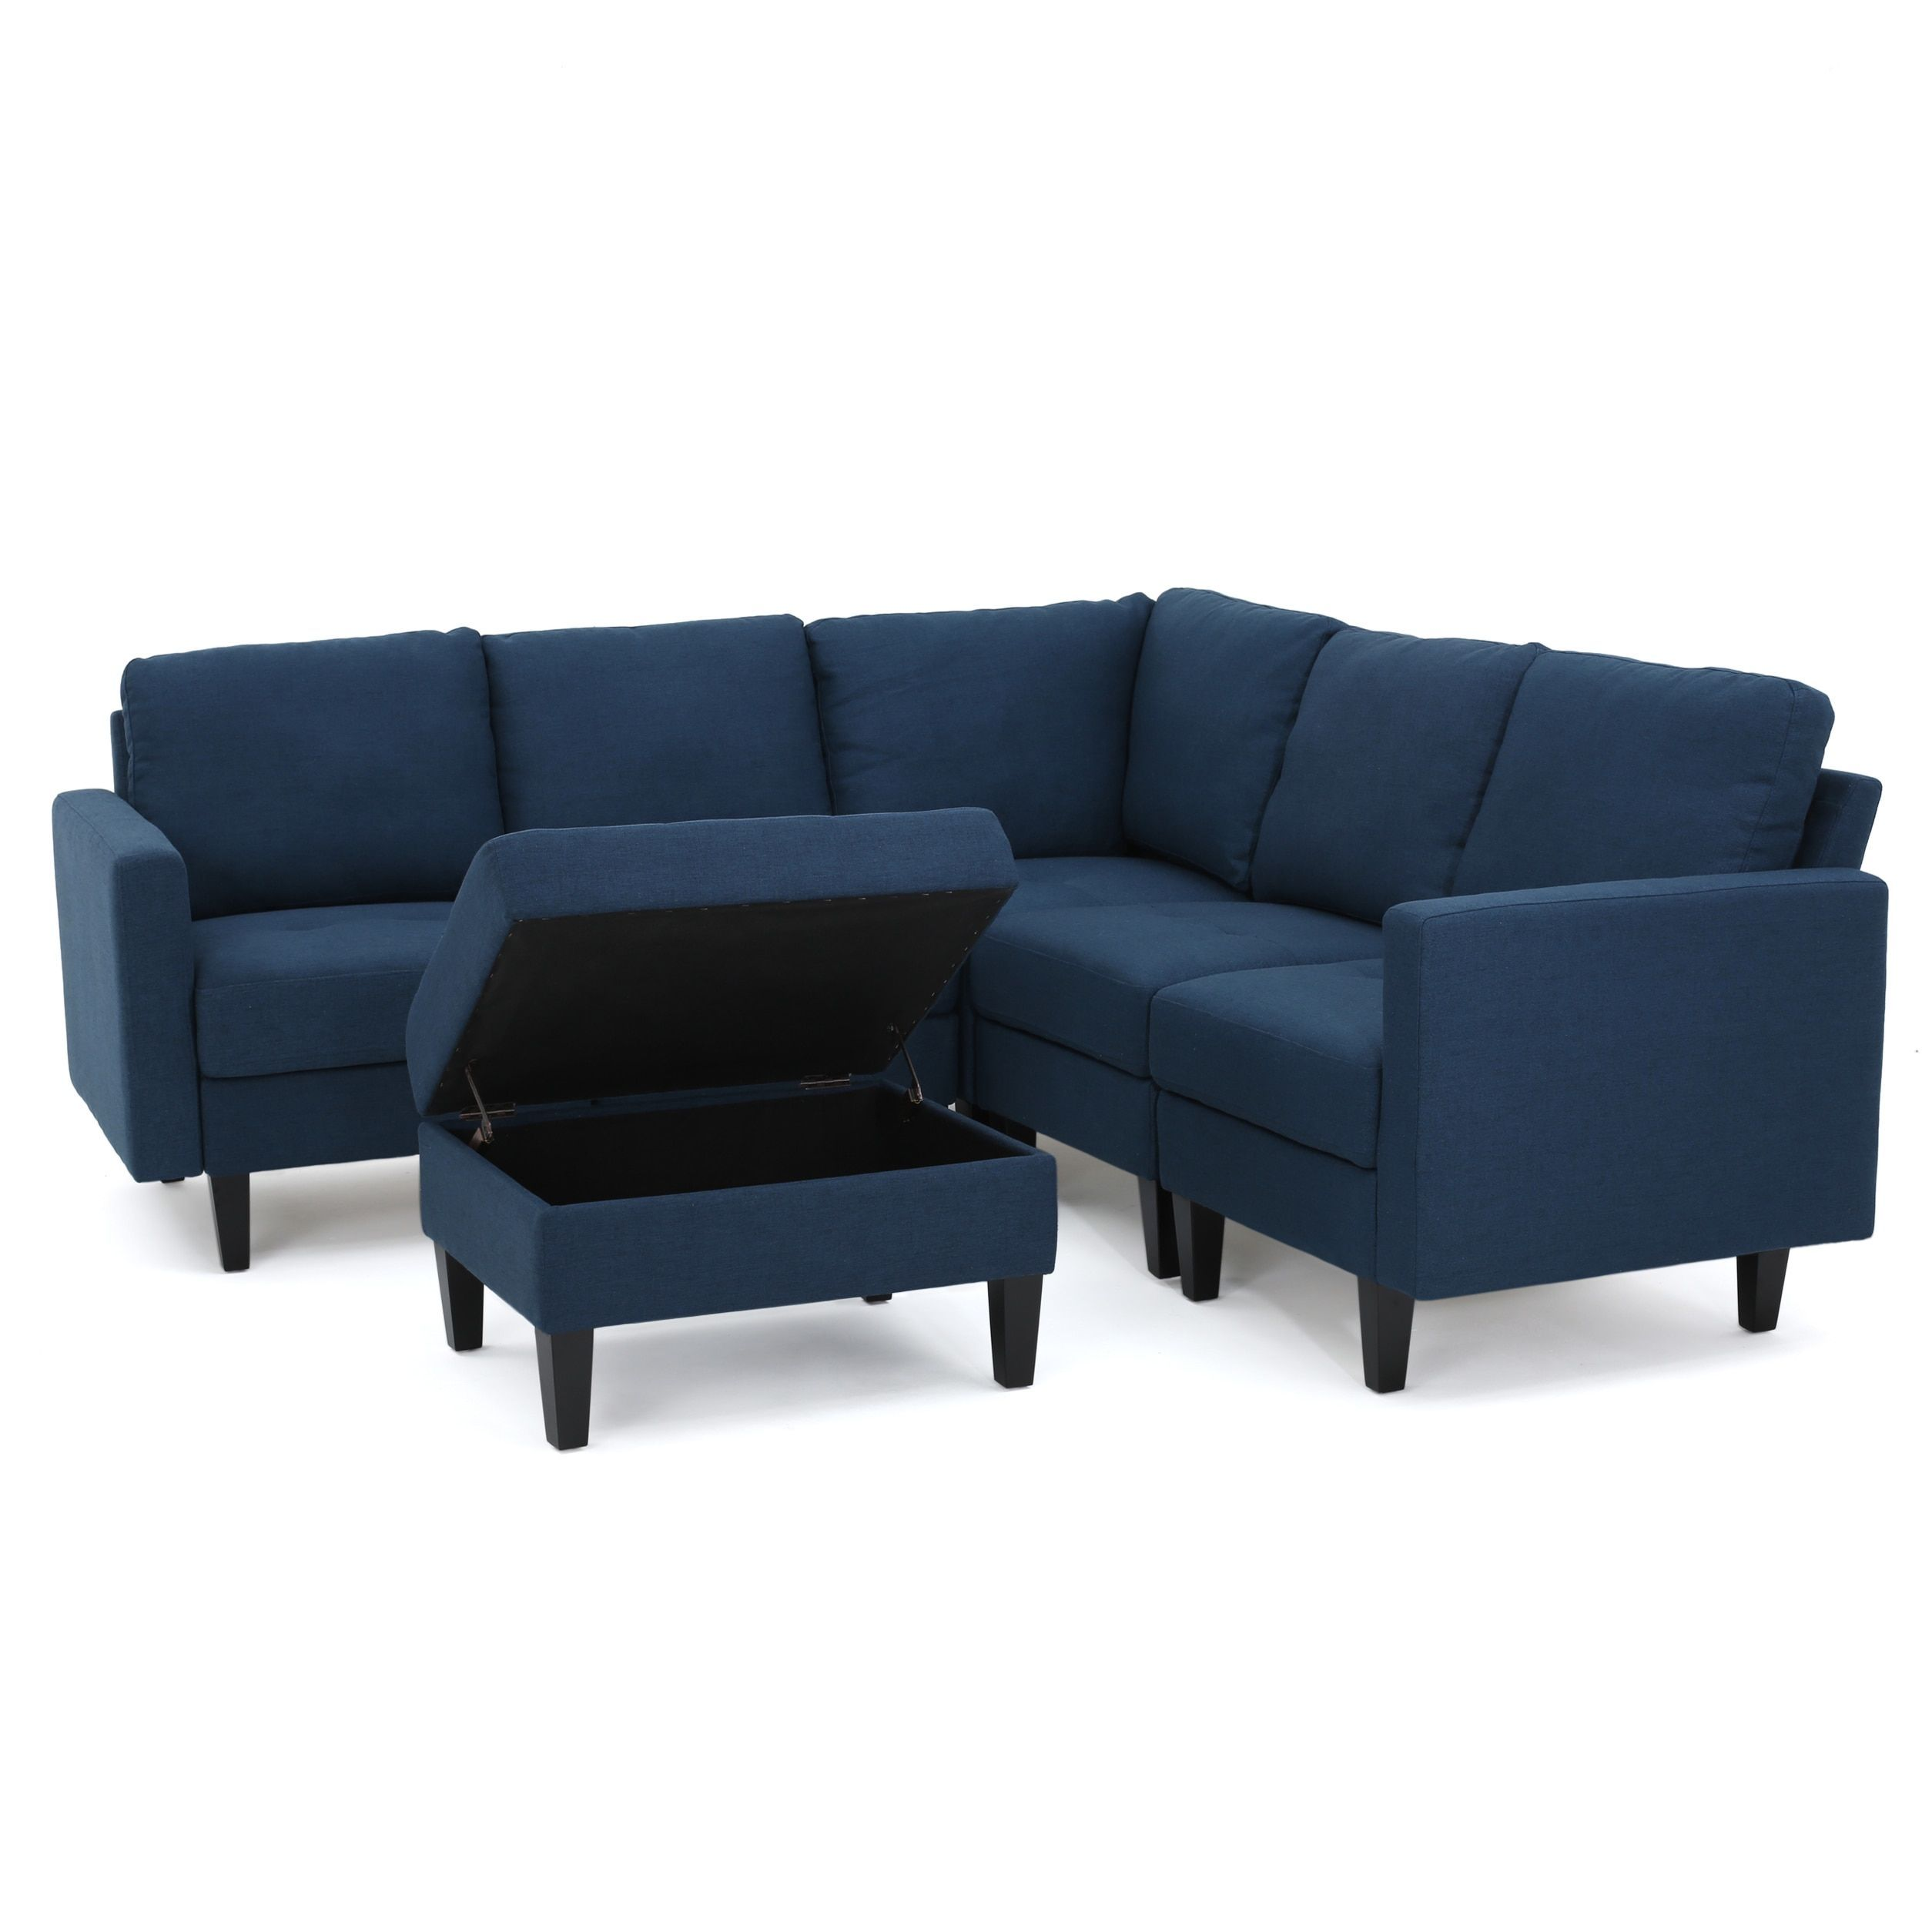 Zahra 6 Piece Fabric Sofa Sectional With Storage Ottoman By Christopher Knight Home Couch With Ottoman Fabric Sectional Furniture